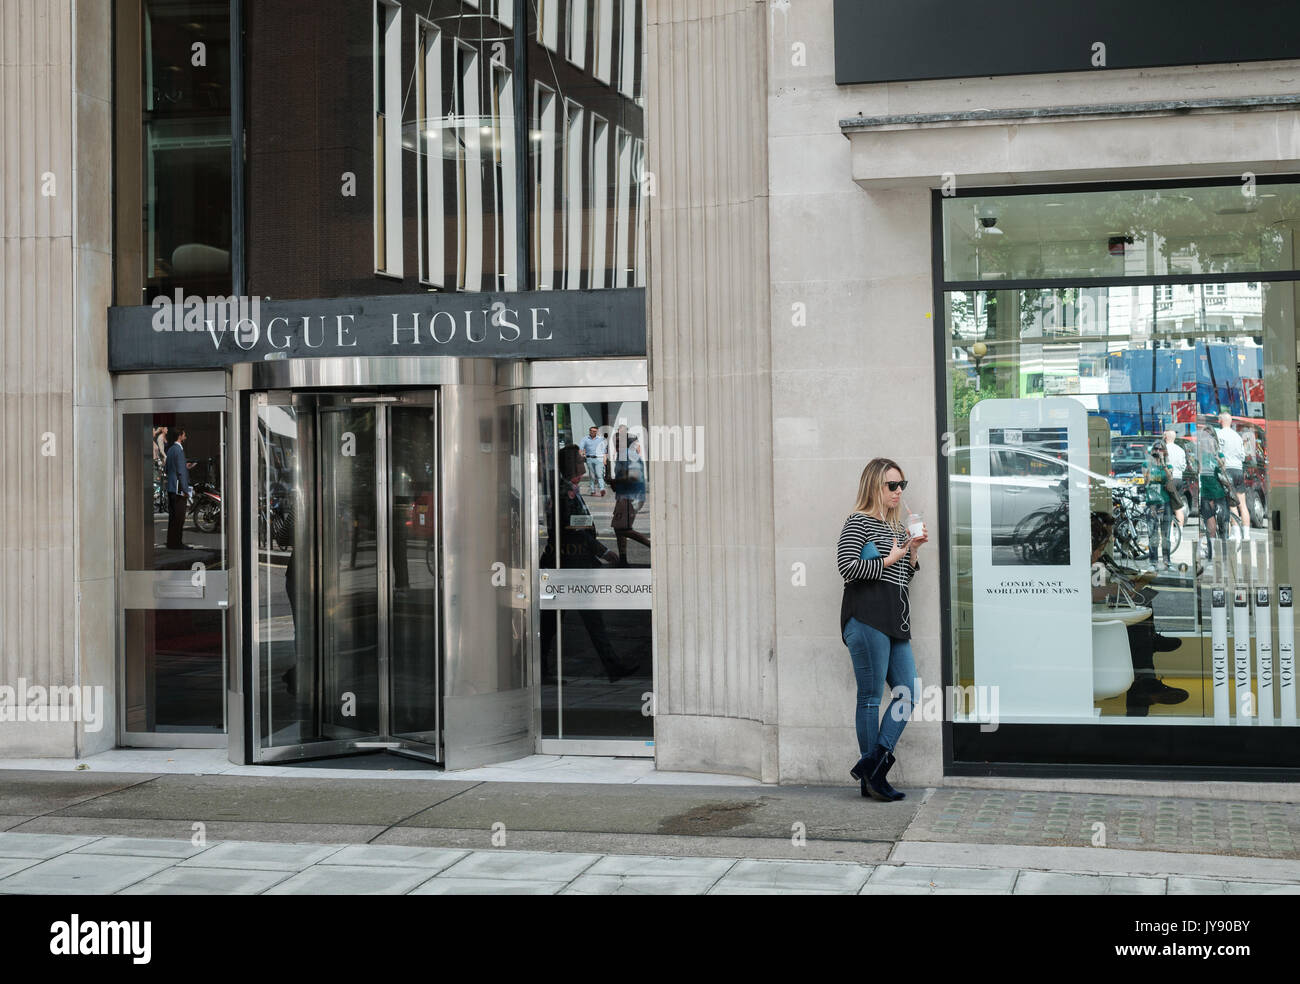 Vogue House, siège du magazine de mode administré par Conde Nast. Mayfair, London, UK Photo Stock